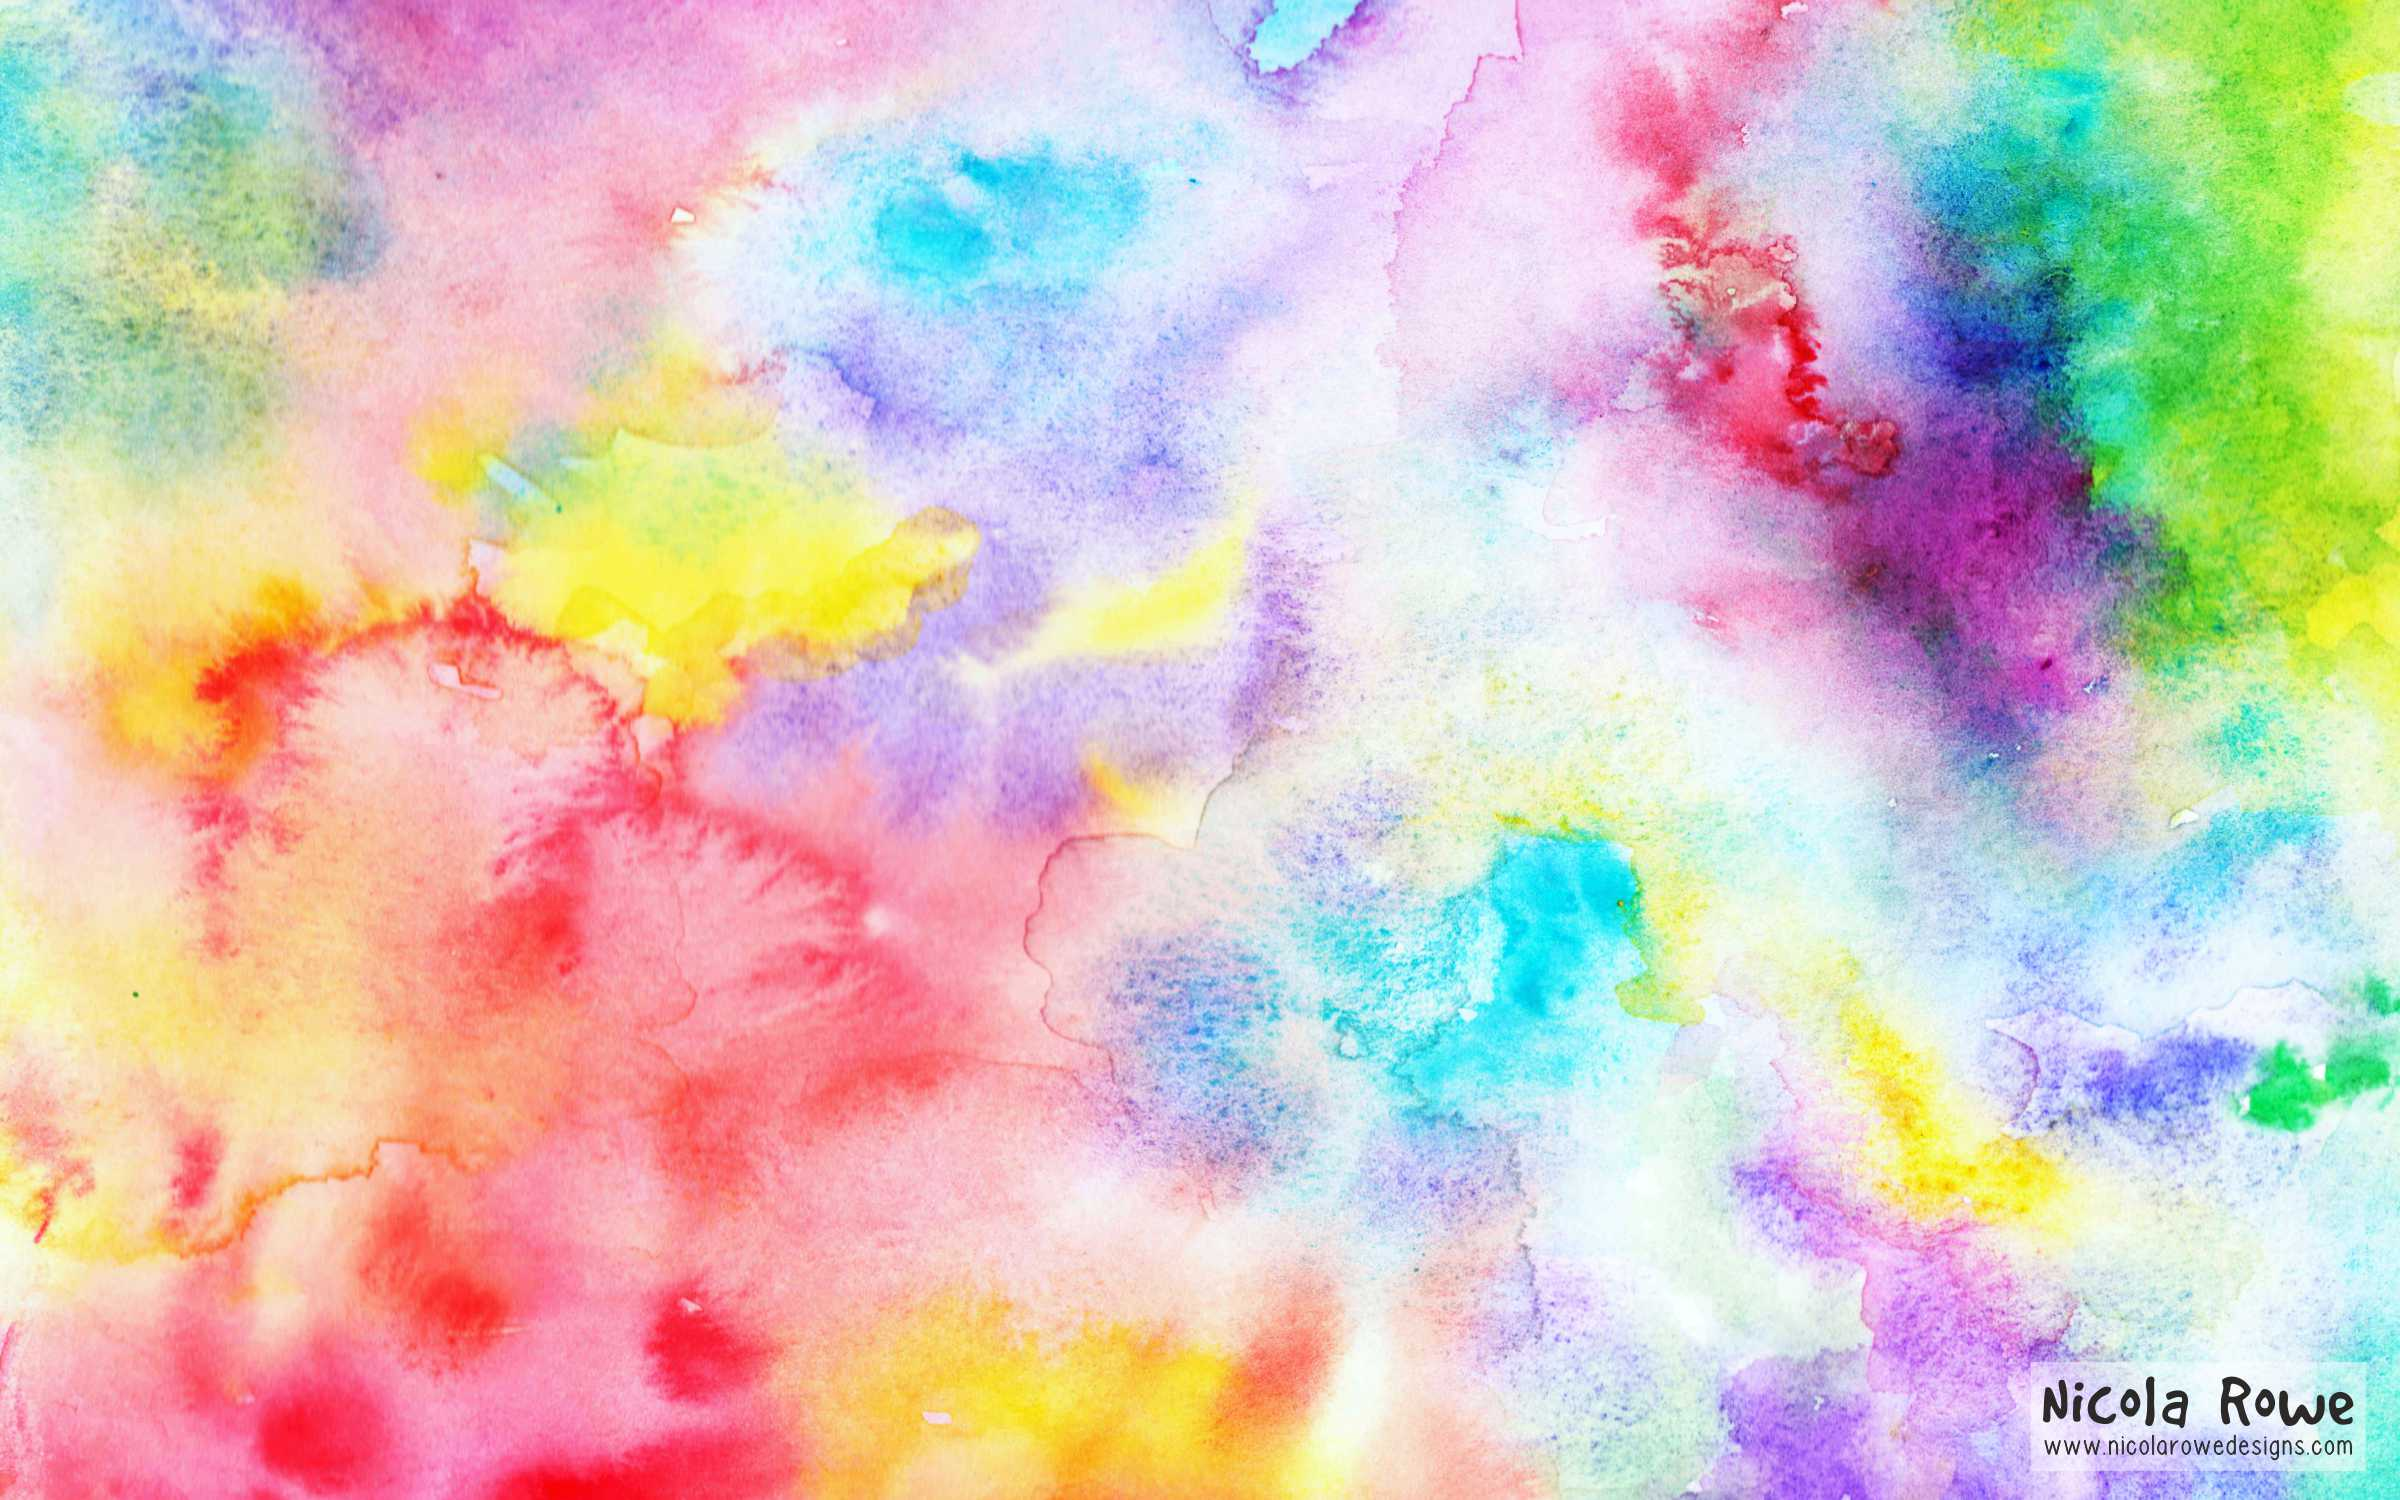 2400x1500 Free Watercolour Desktop Wallpaper For Every Reader! Nicola Rowe